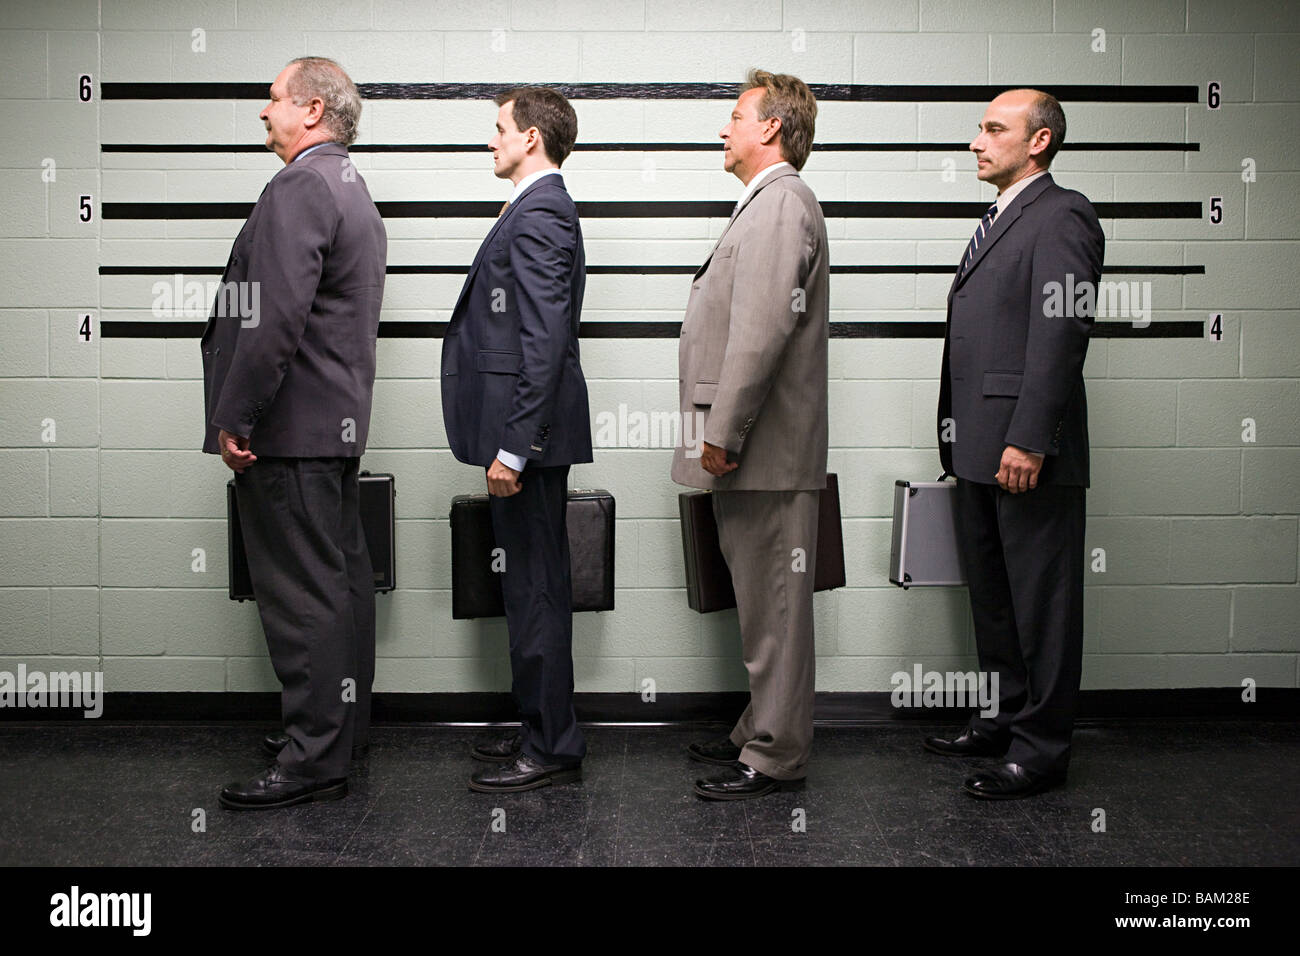 Des hommes d'affaires de lineup Photo Stock